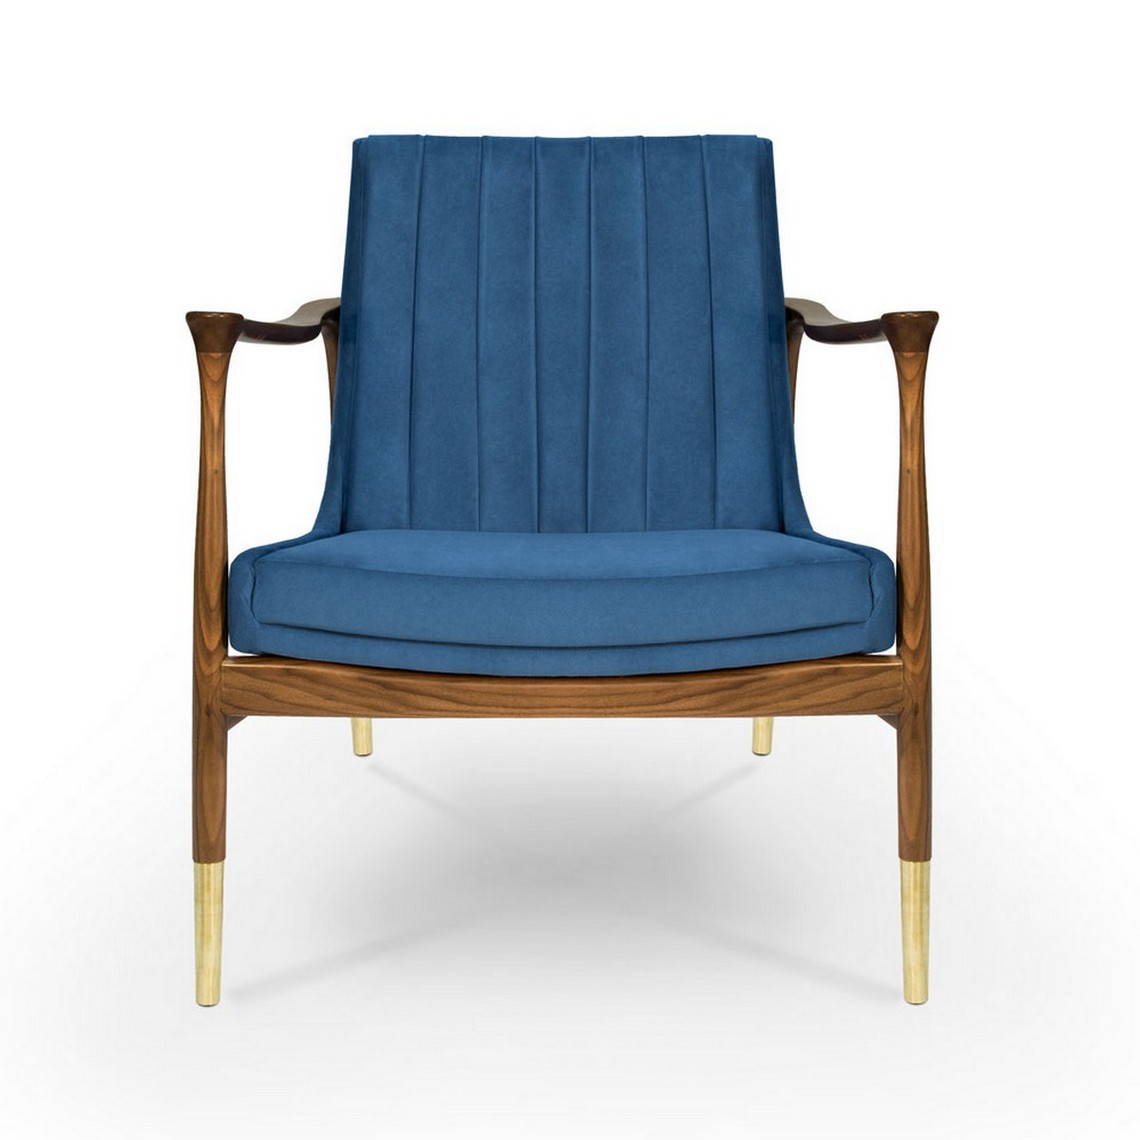 Modern Armchairs Made Exclusively For You modern armchairs Modern Armchairs Made Exclusively For You hudson2